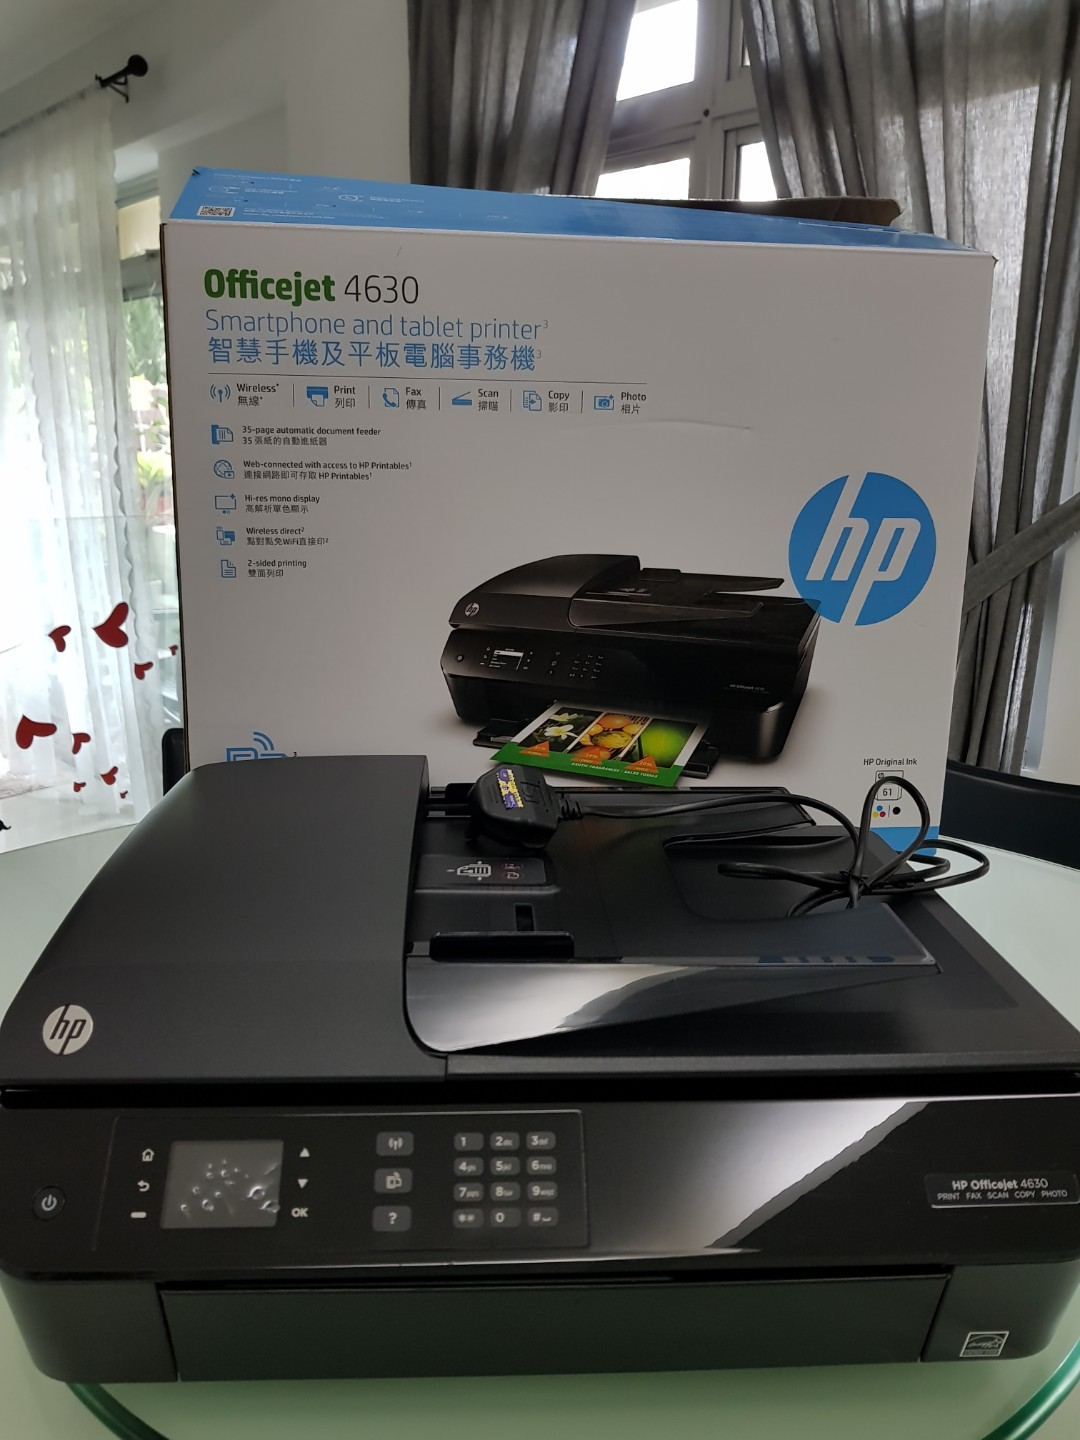 Black Friday Sales! HP Officejet 4630 e-All-in-One Printer